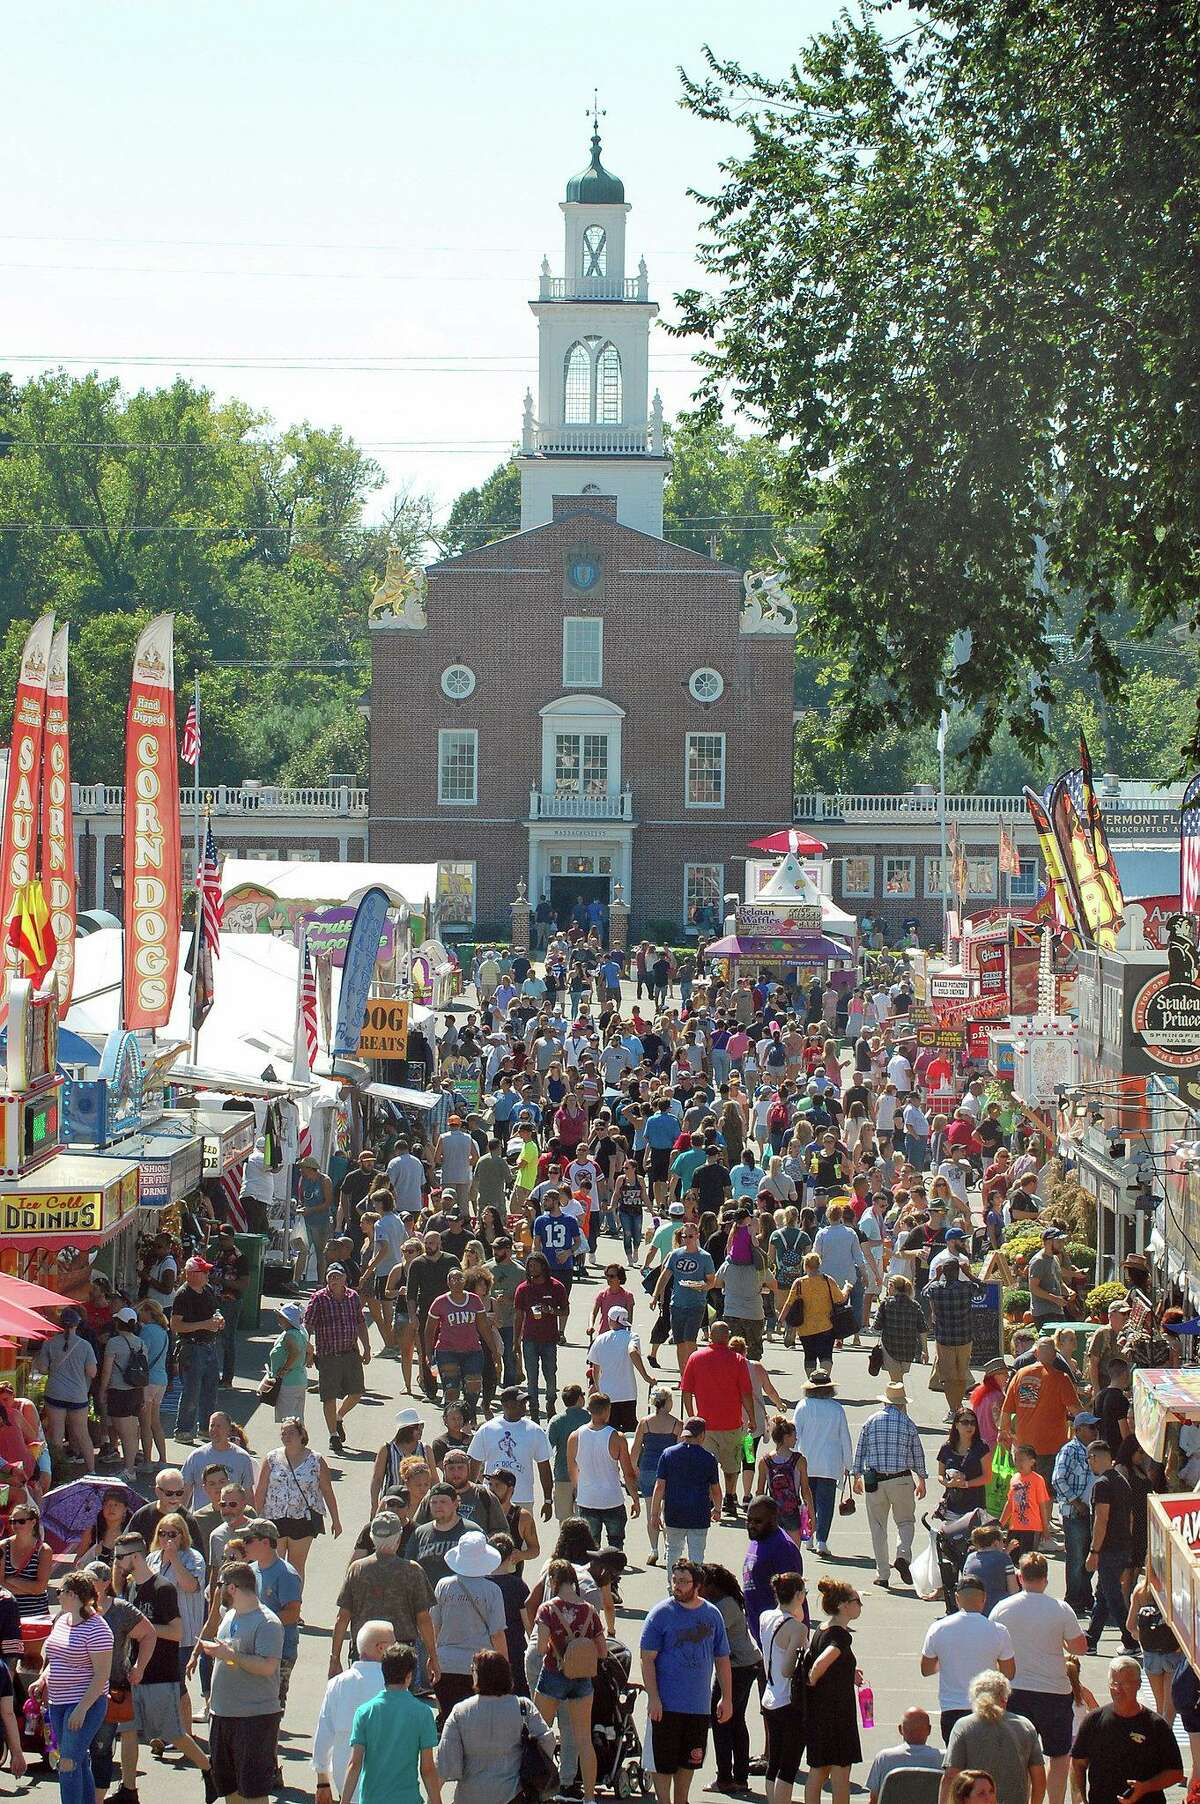 The scene during a busy and bright 2018 day at The Big E.